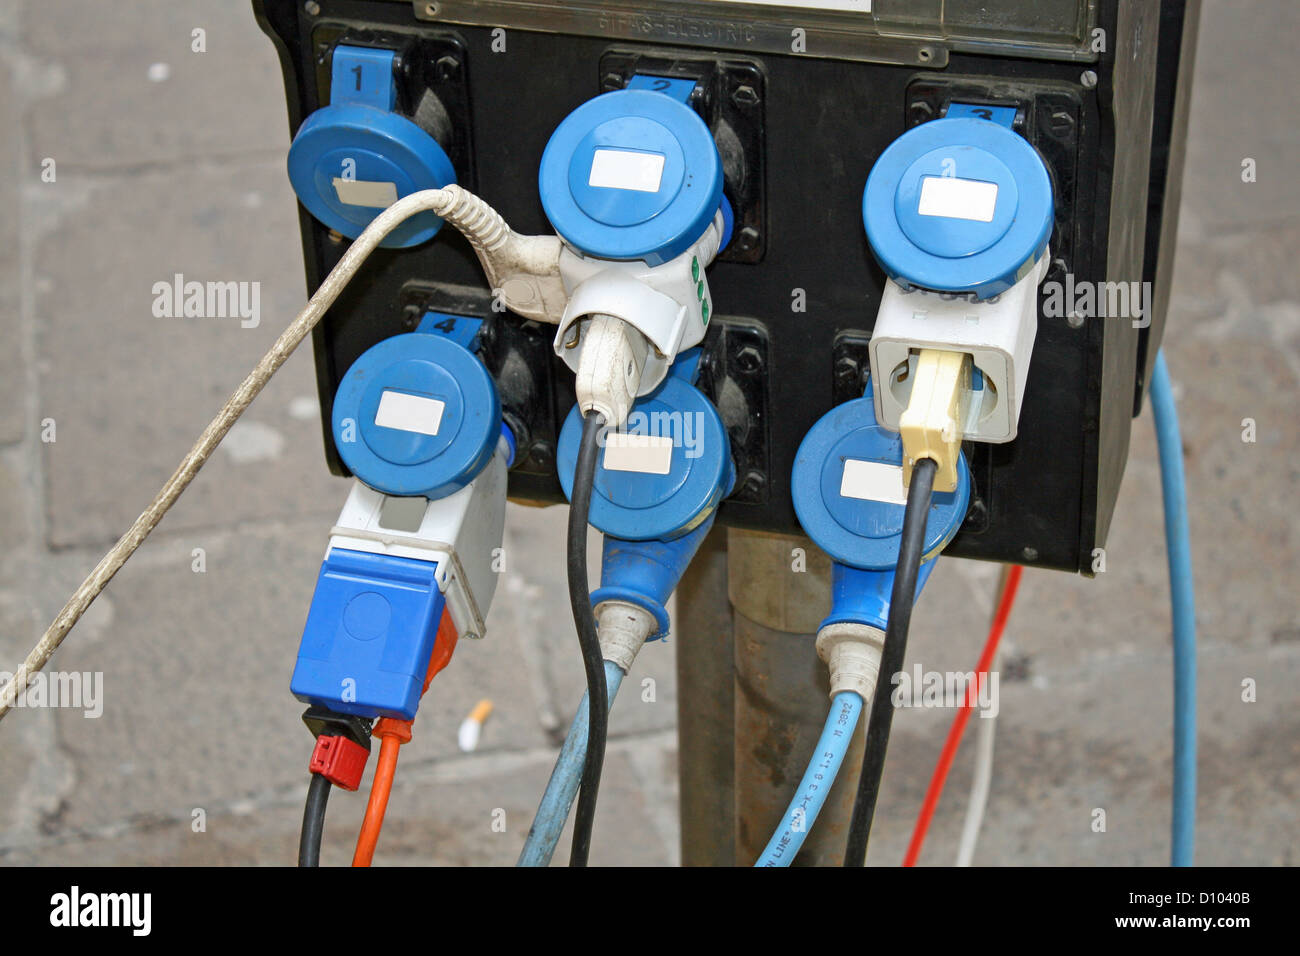 Electrical Outlets Stock Photos & Electrical Outlets Stock Images ...